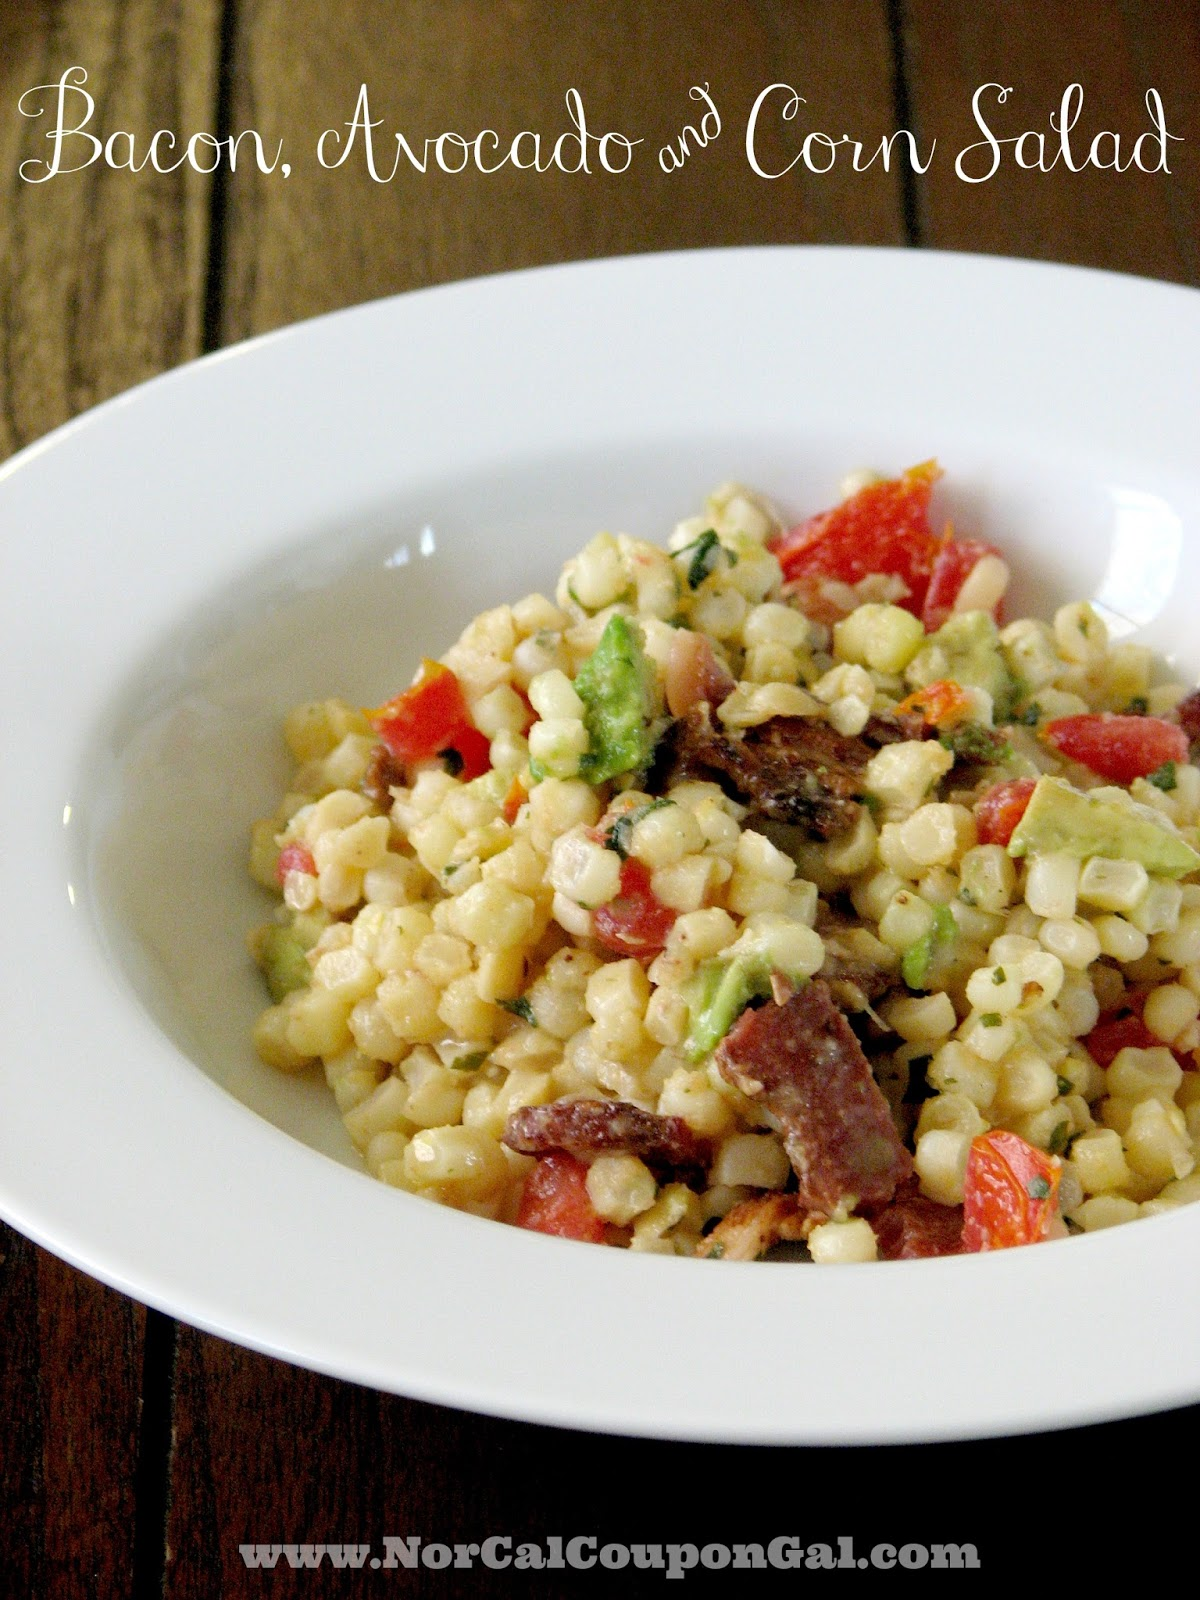 In The Kitchen With Mom Mondays – Bacon, Avocado & Corn Salad